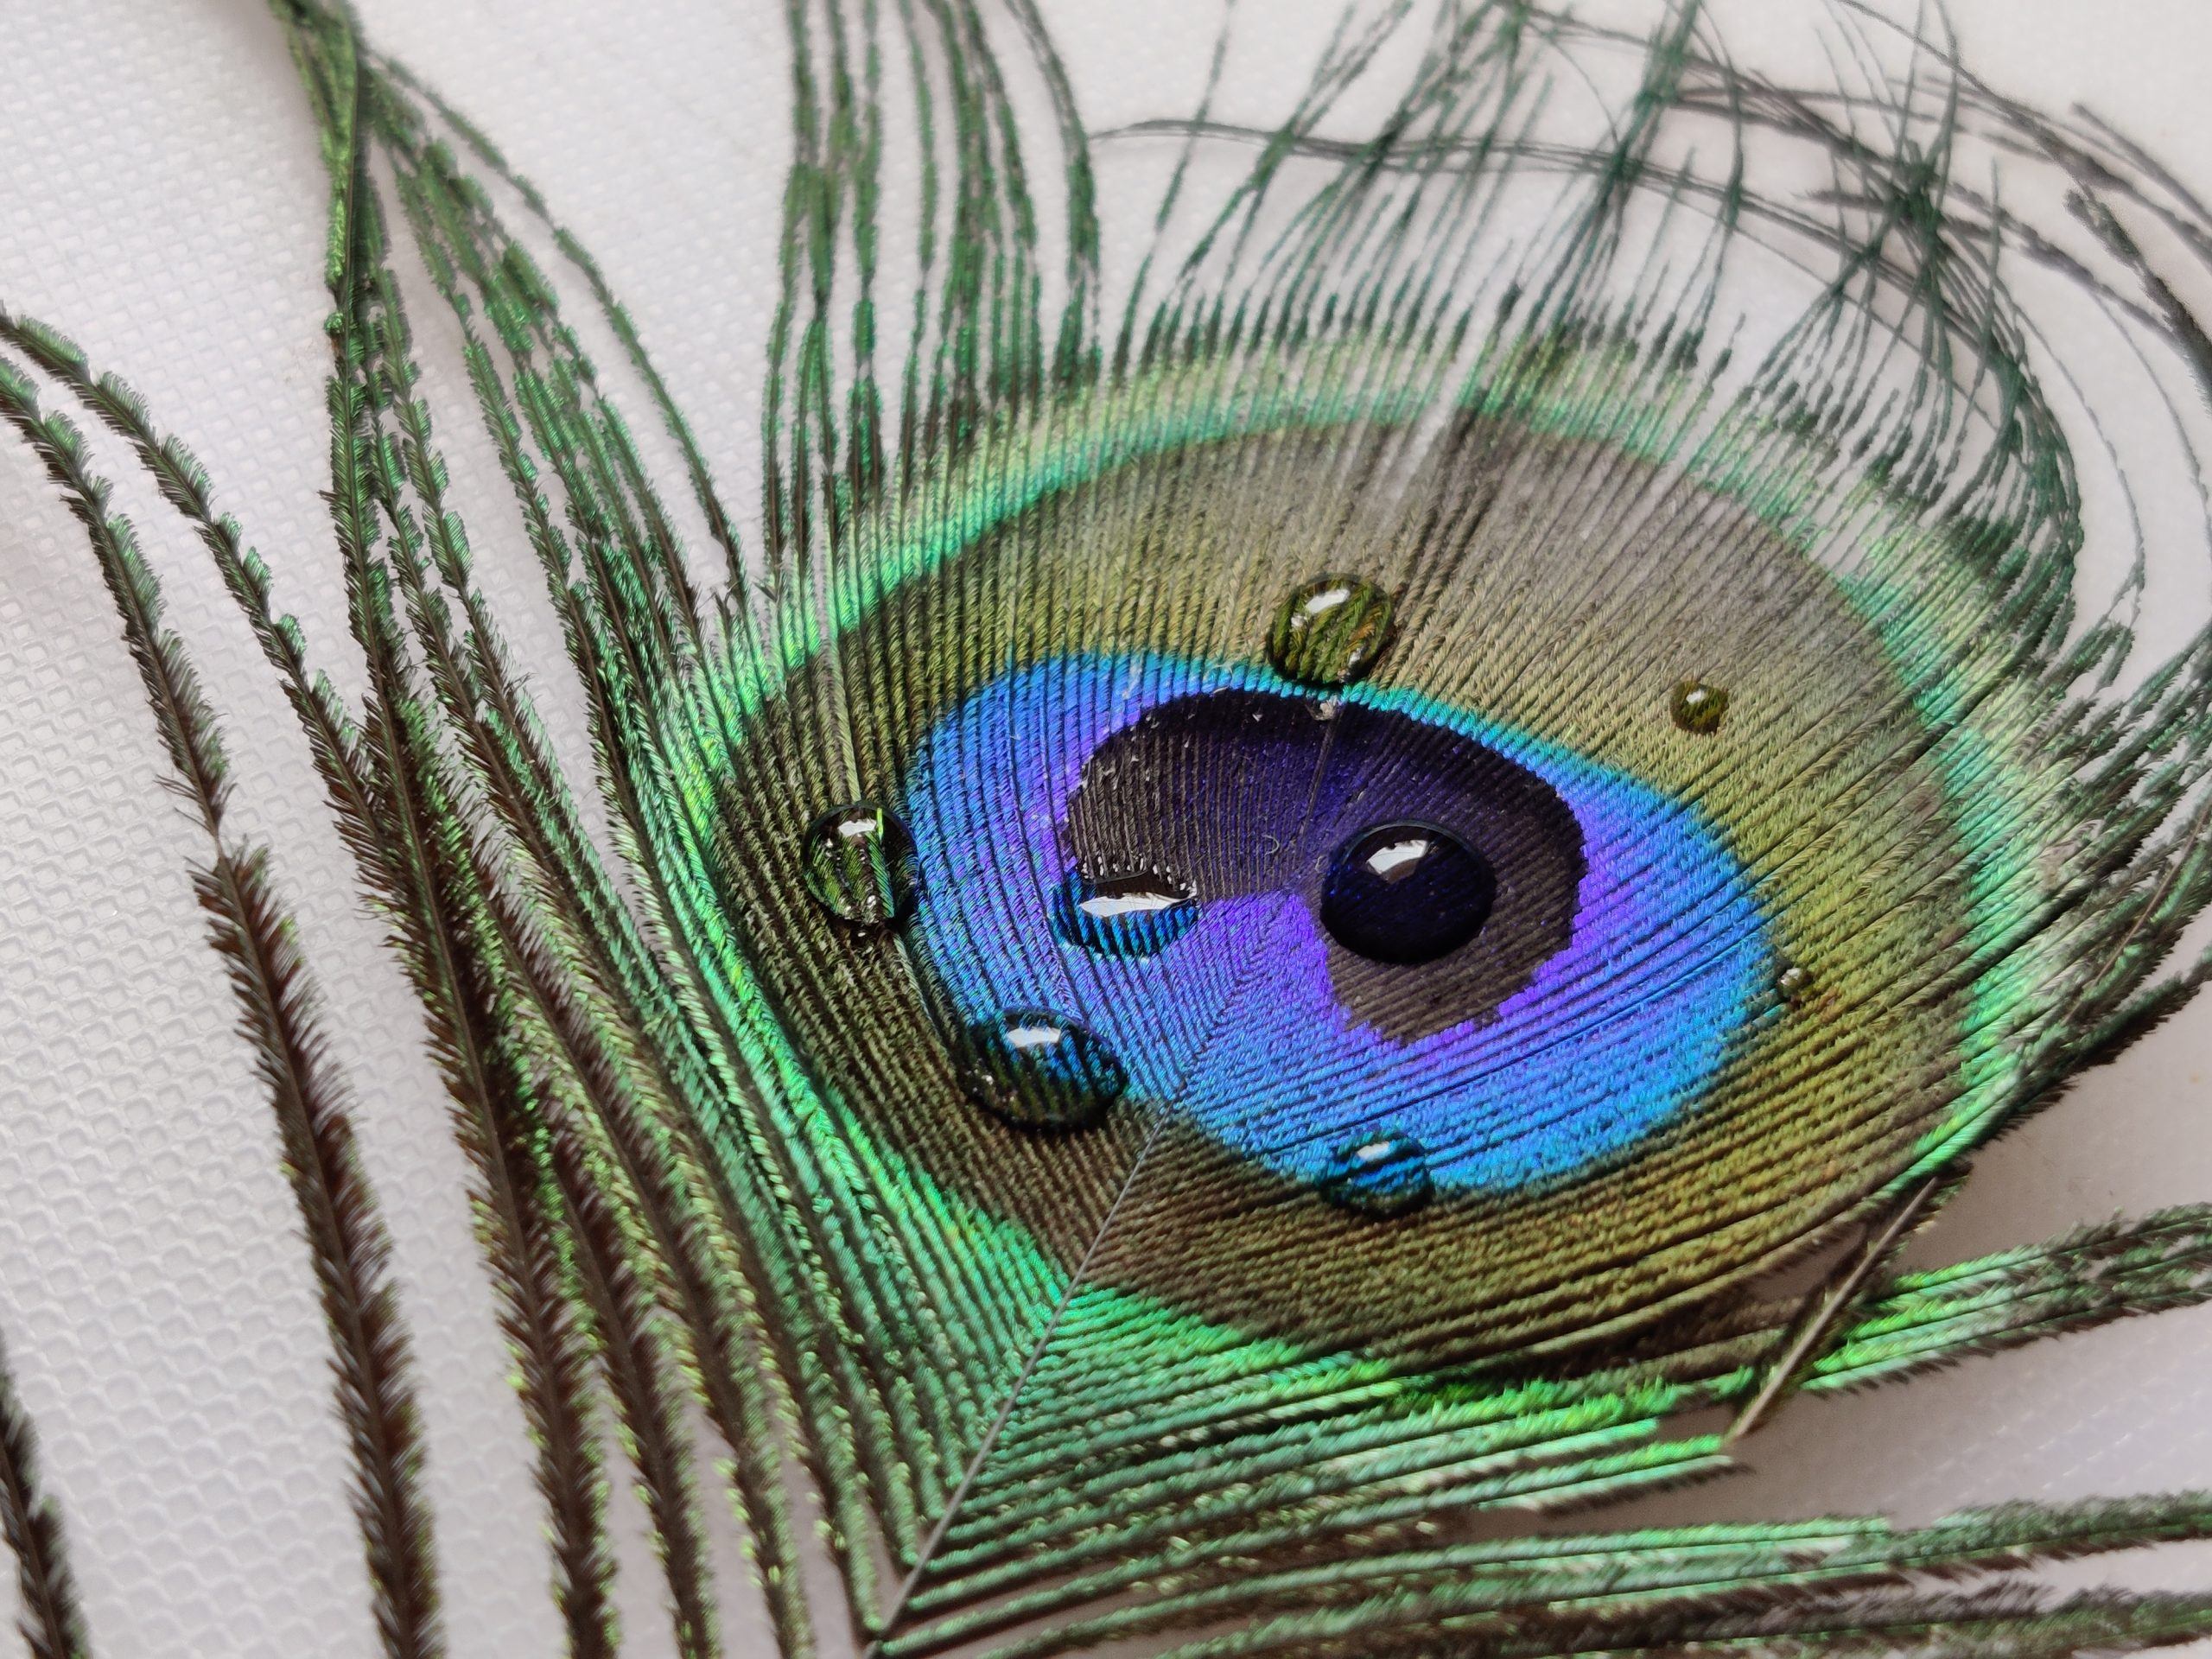 Waterdrops on peacock feather